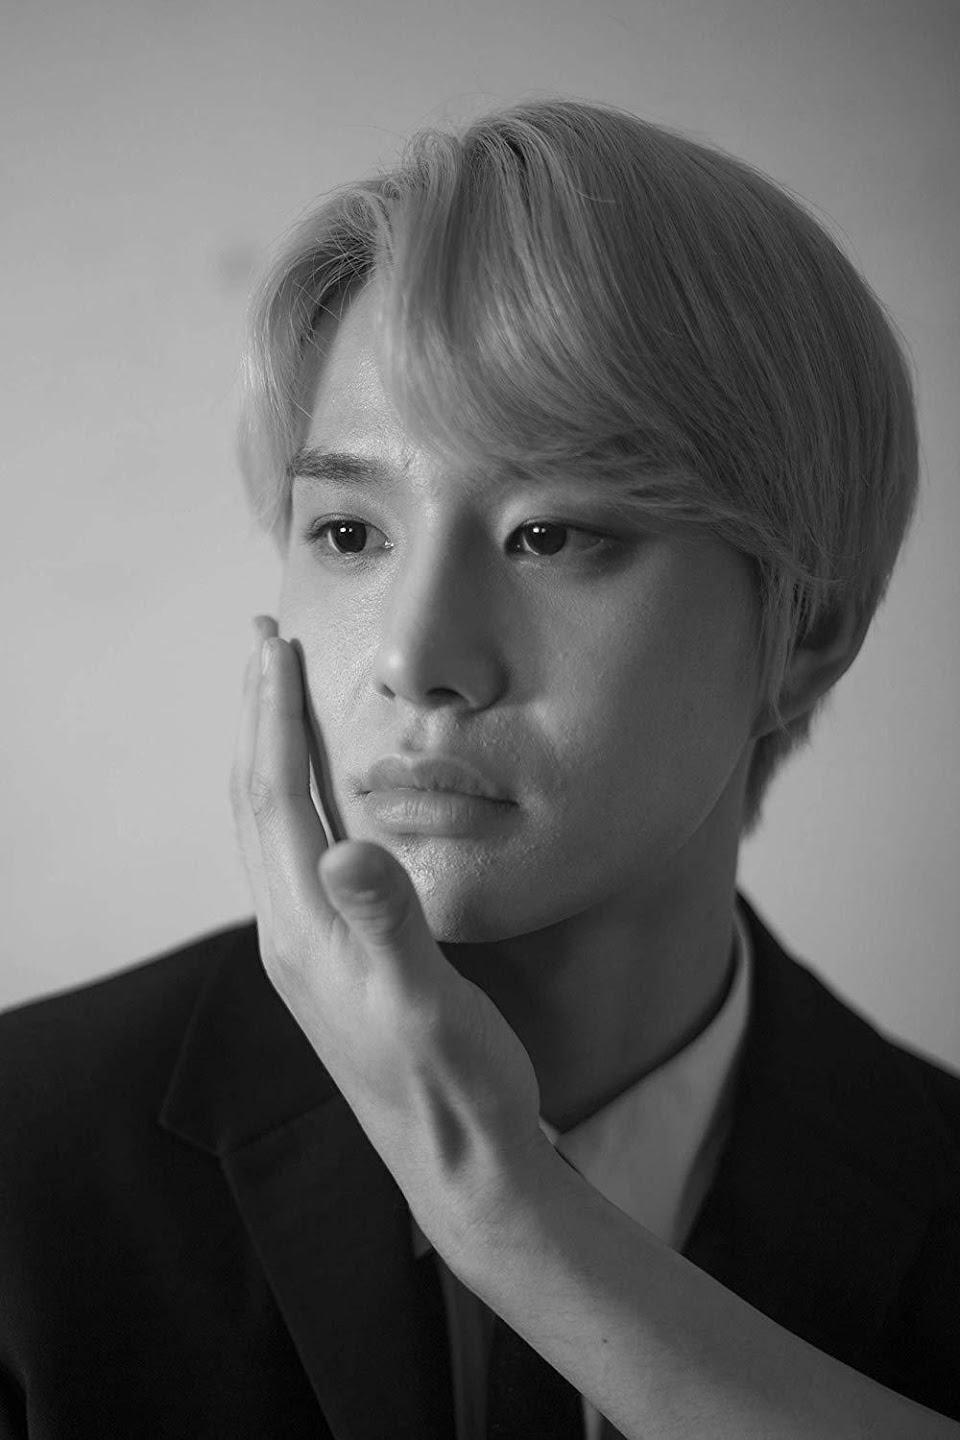 jungwoo dispatch